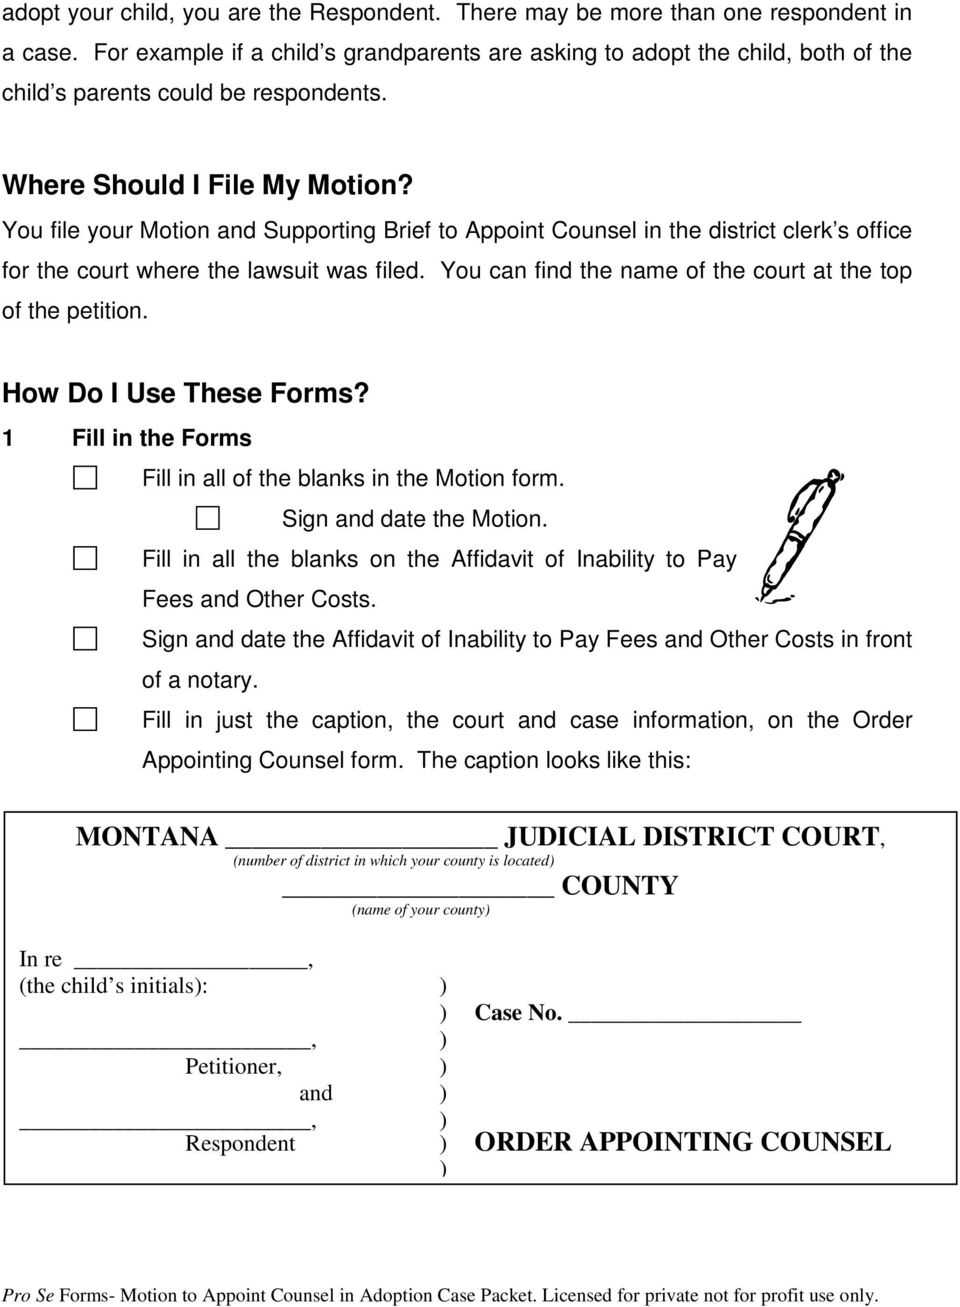 You file your Motion and Supporting Brief to Appoint Counsel in the district clerk s office for the court where the lawsuit was filed. You can find the name of the court at the top of the petition.